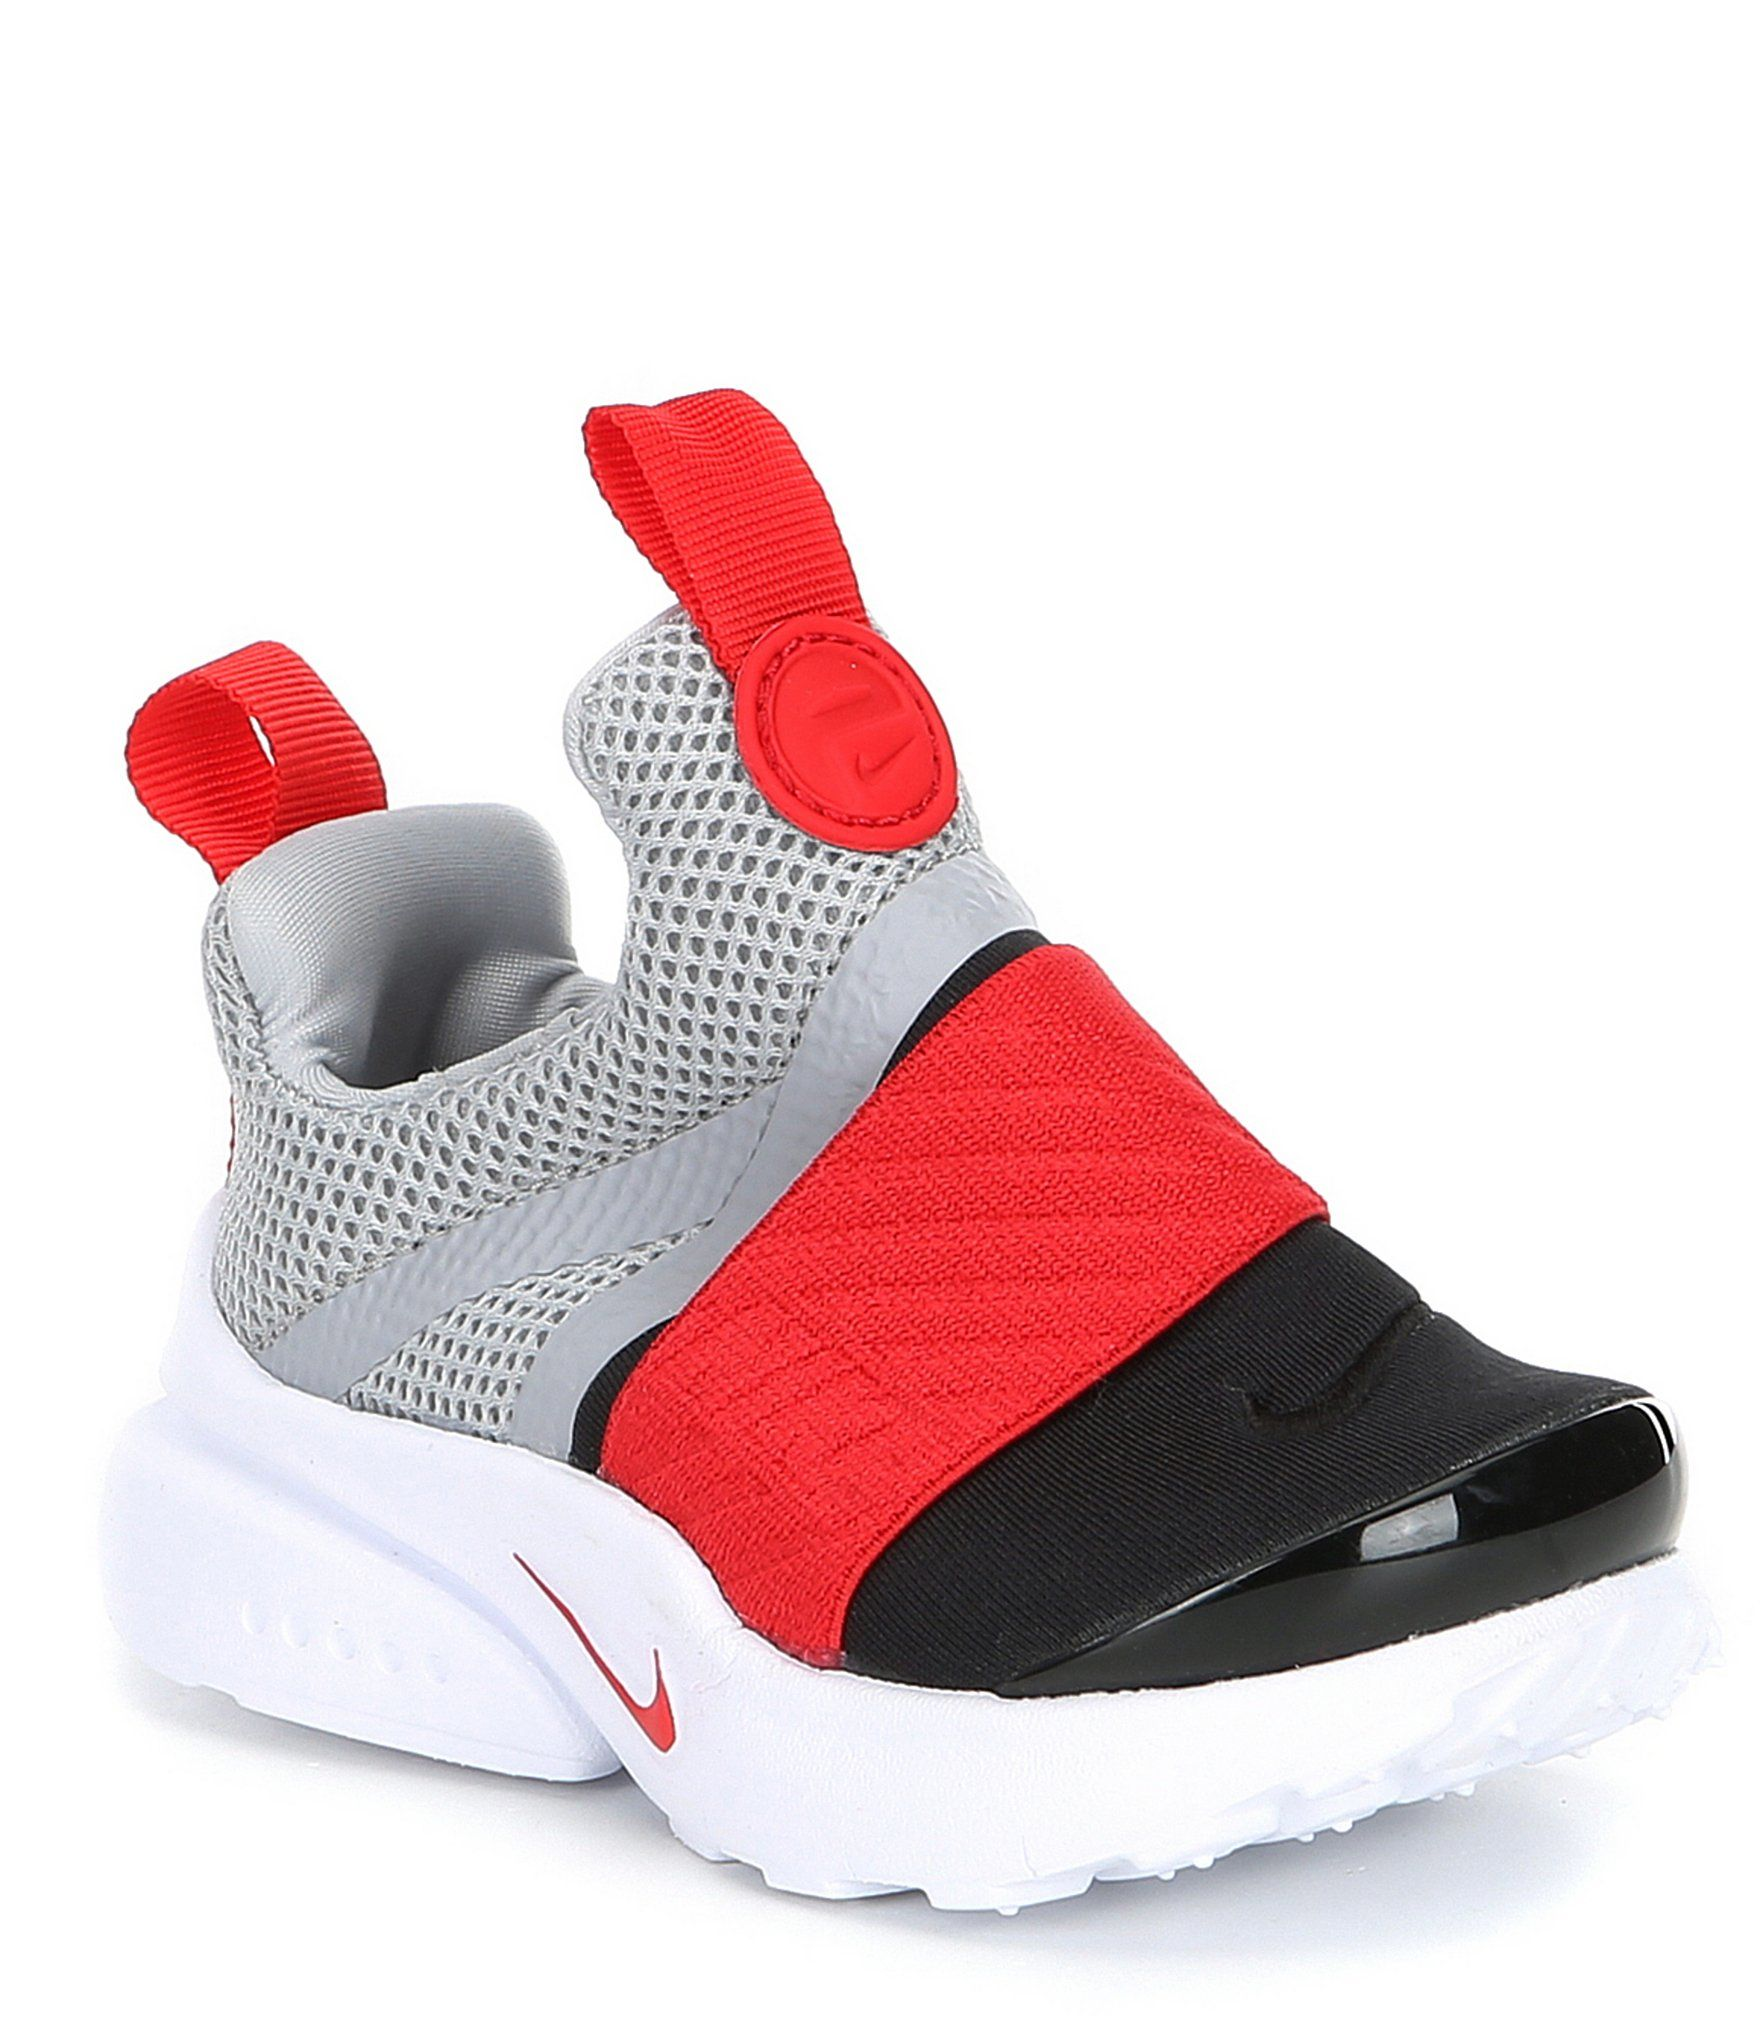 new style addb2 0dbeb Shop for Nike Boy s Presto Extreme Slip On at Dillards.com. Visit  Dillards.com to find clothing, accessories, shoes, cosmetics   more.